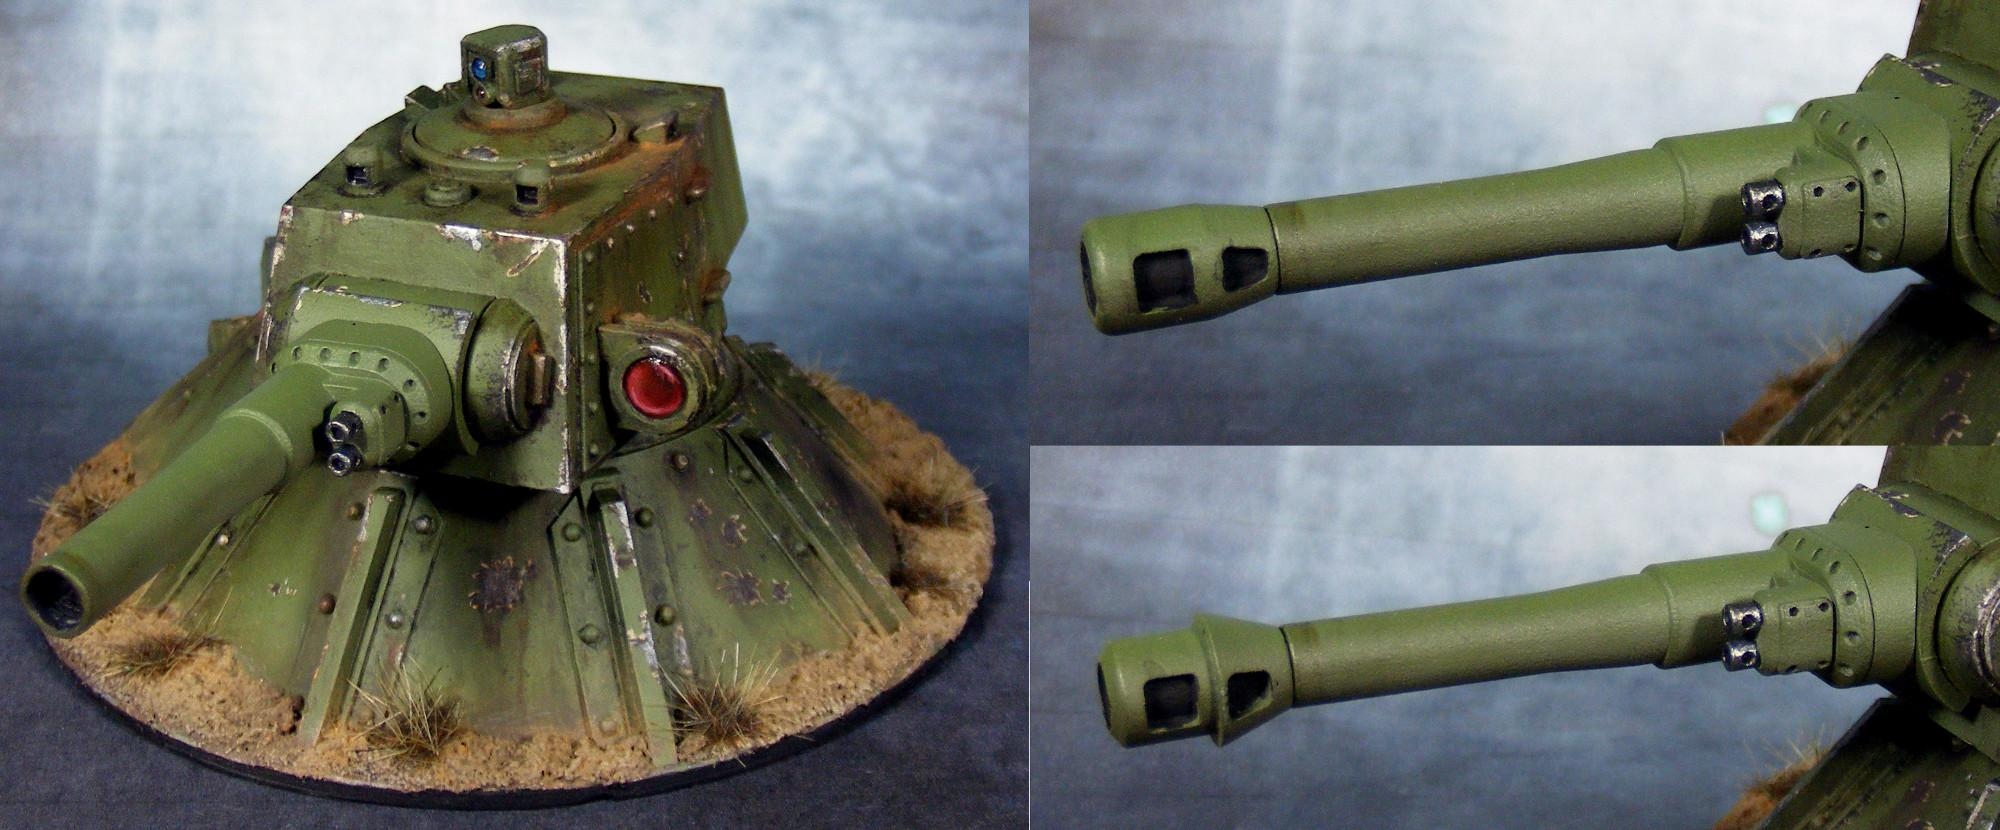 Emplacement, Genswick, Gun Turret, Imperial Guard, Resin, Scratch Build, Warhammer 40,000